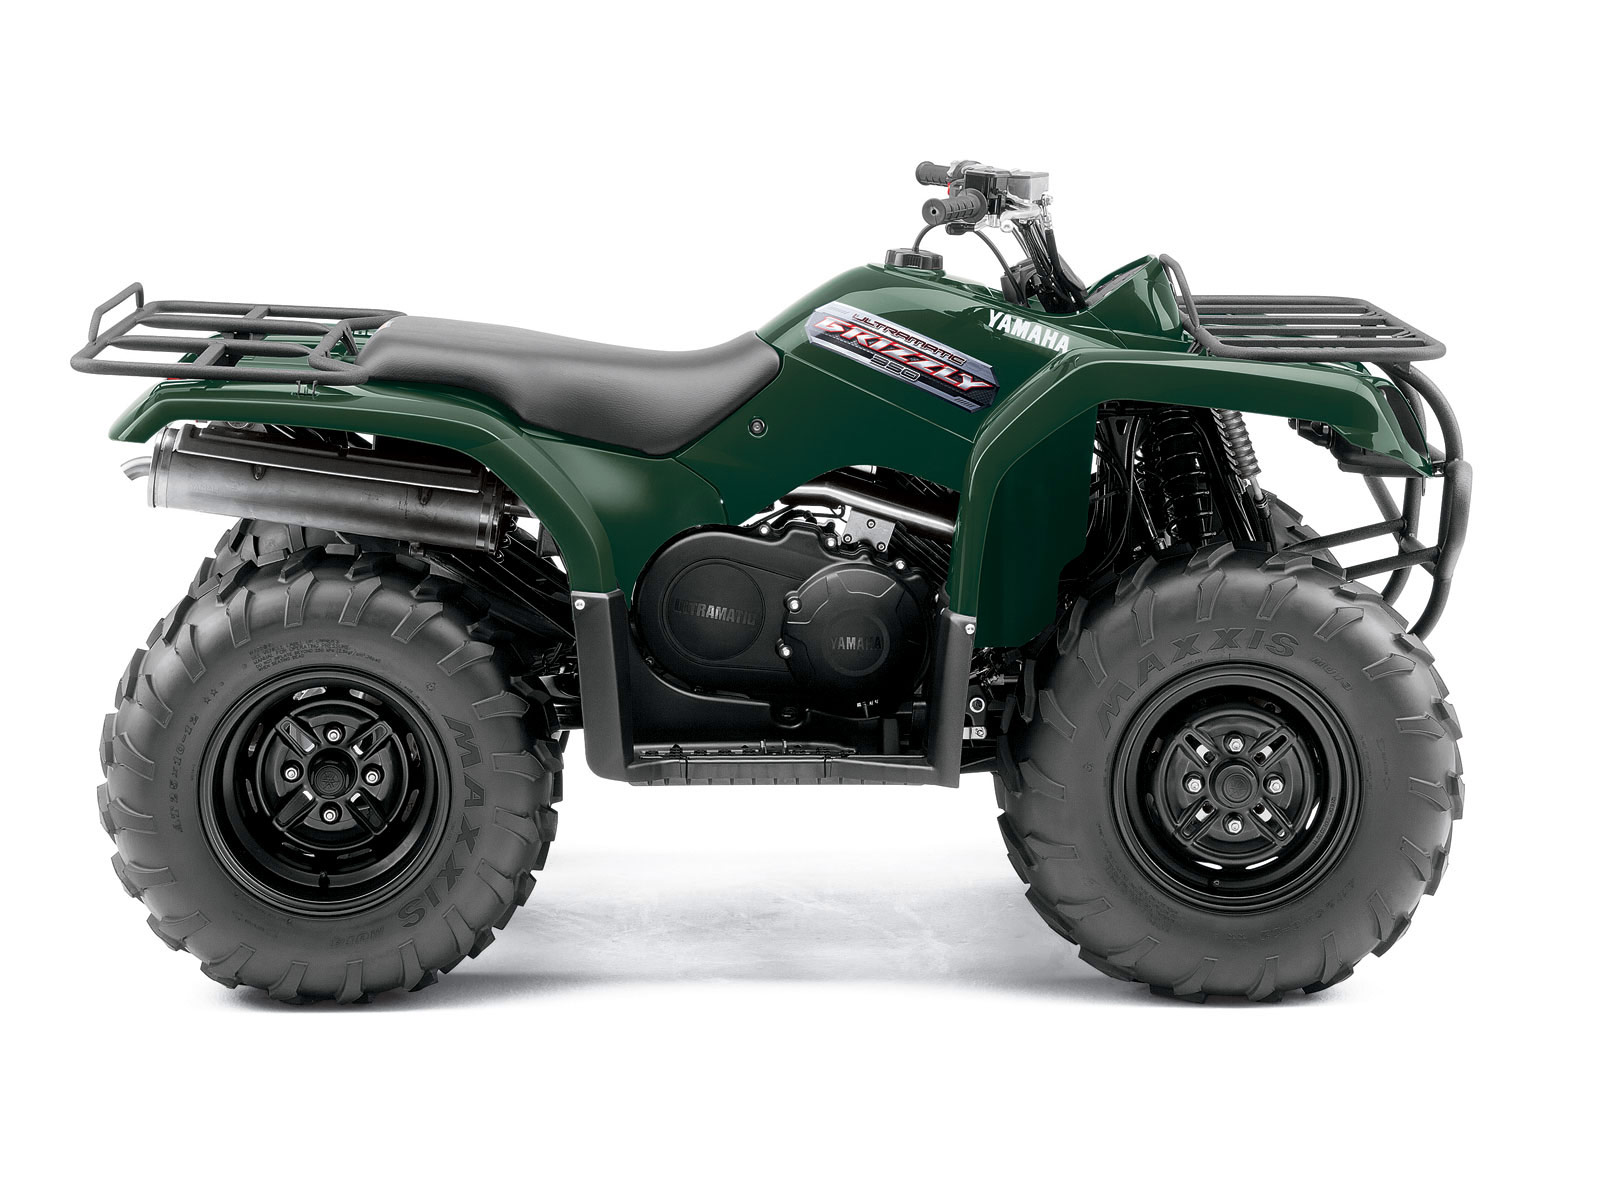 2012 yamaha grizzly 350 auto 4x4 atv pictures. Black Bedroom Furniture Sets. Home Design Ideas